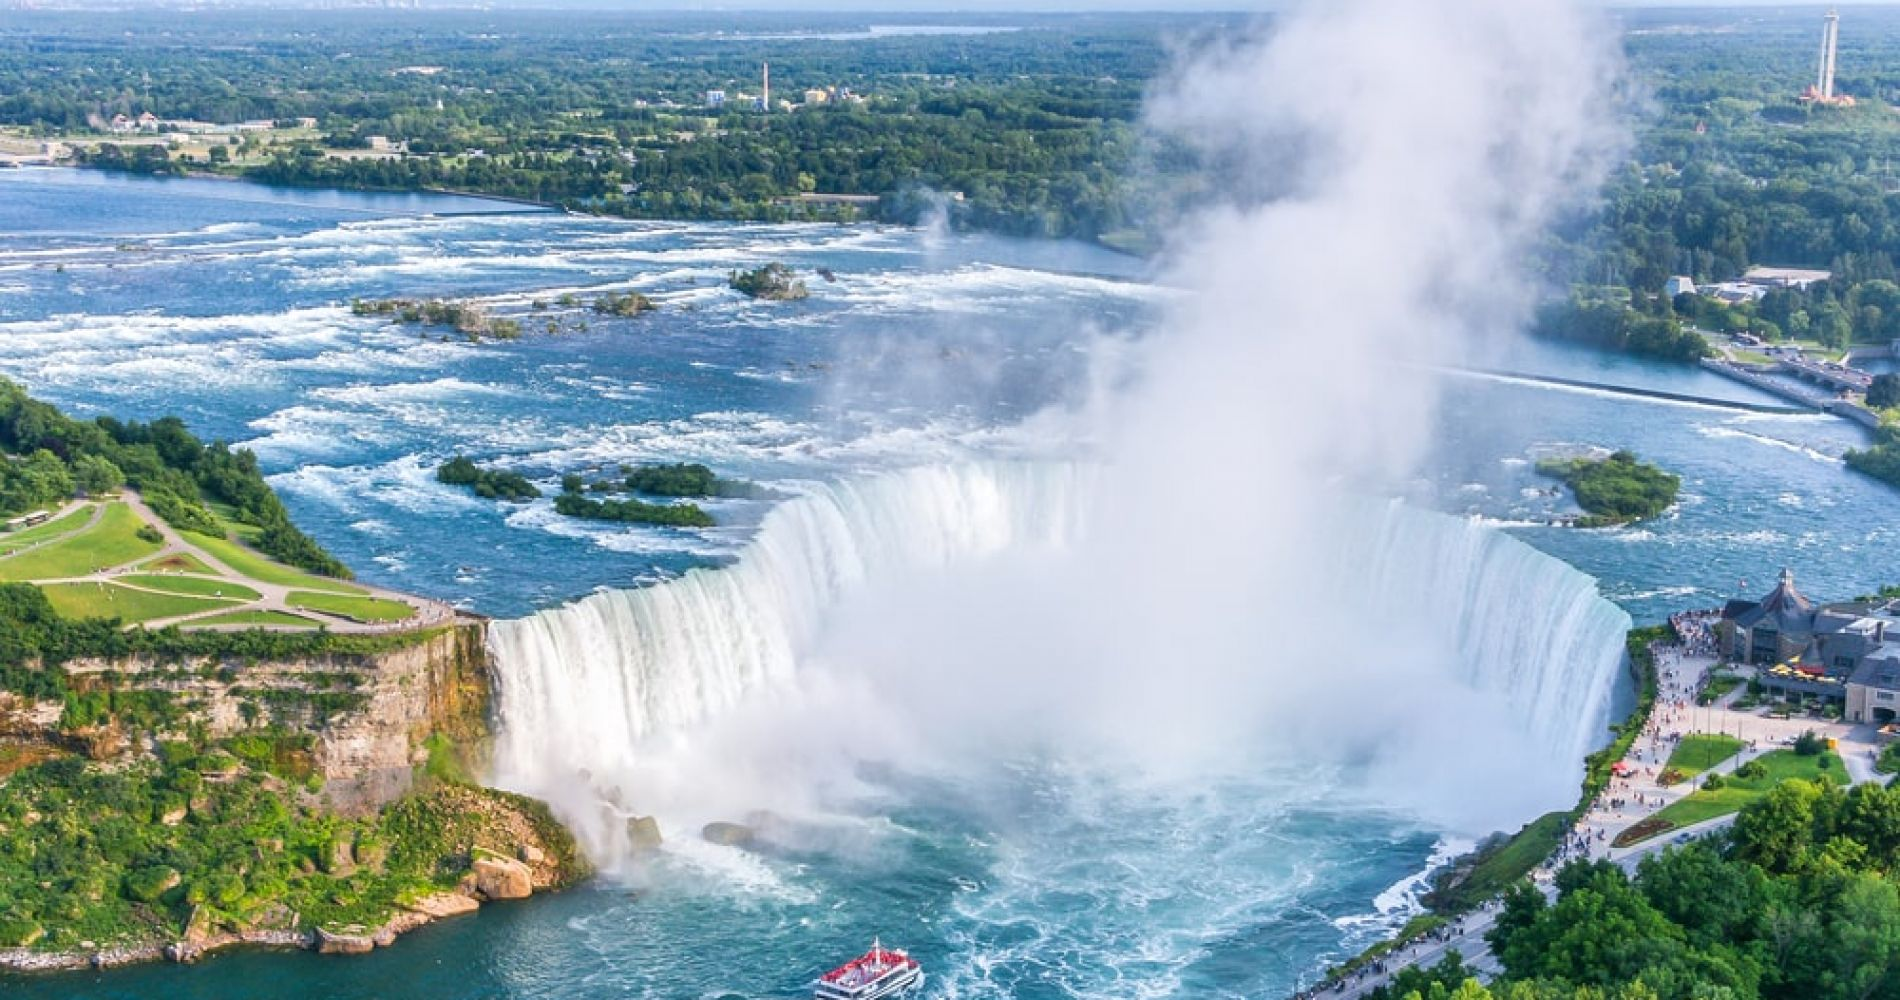 Visit Niagara Falls from either Canada or USA